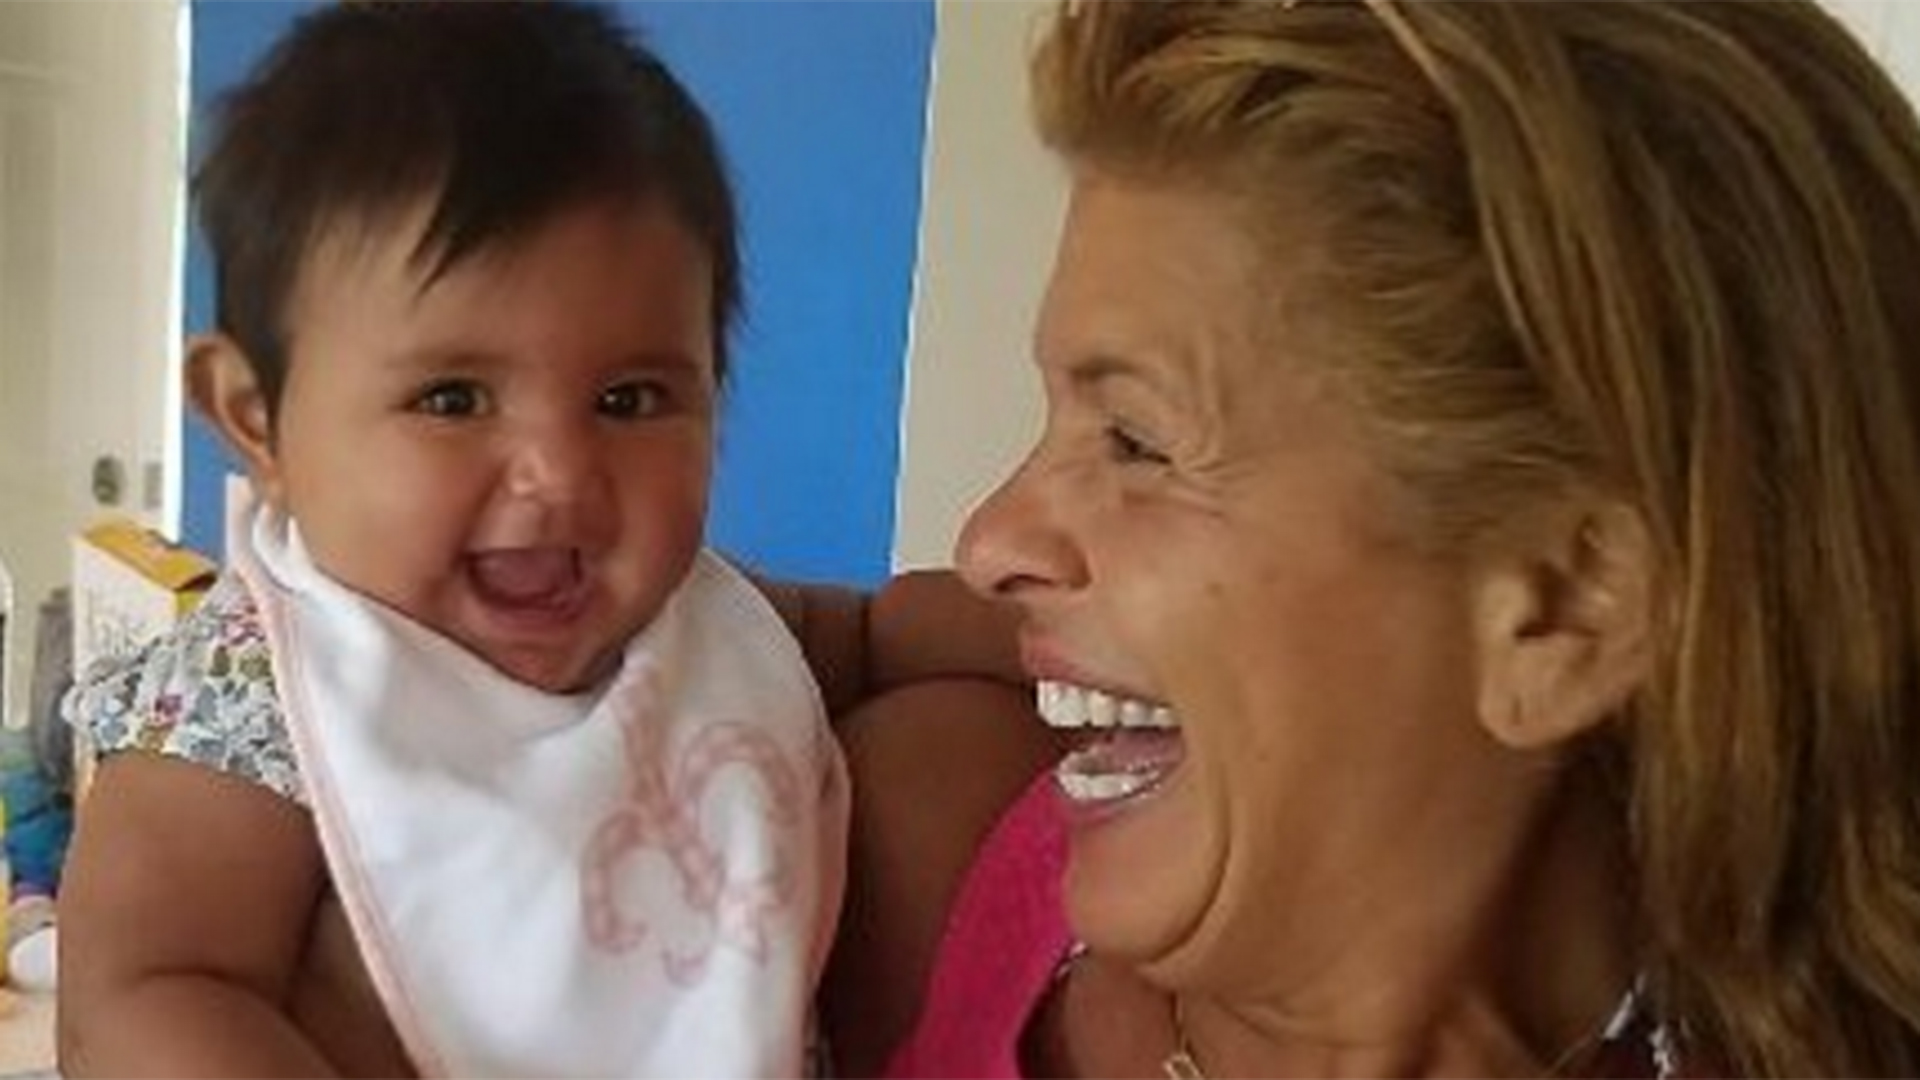 The song Hoda Kotb sings to Haley Joy totally brings us back to our childhood